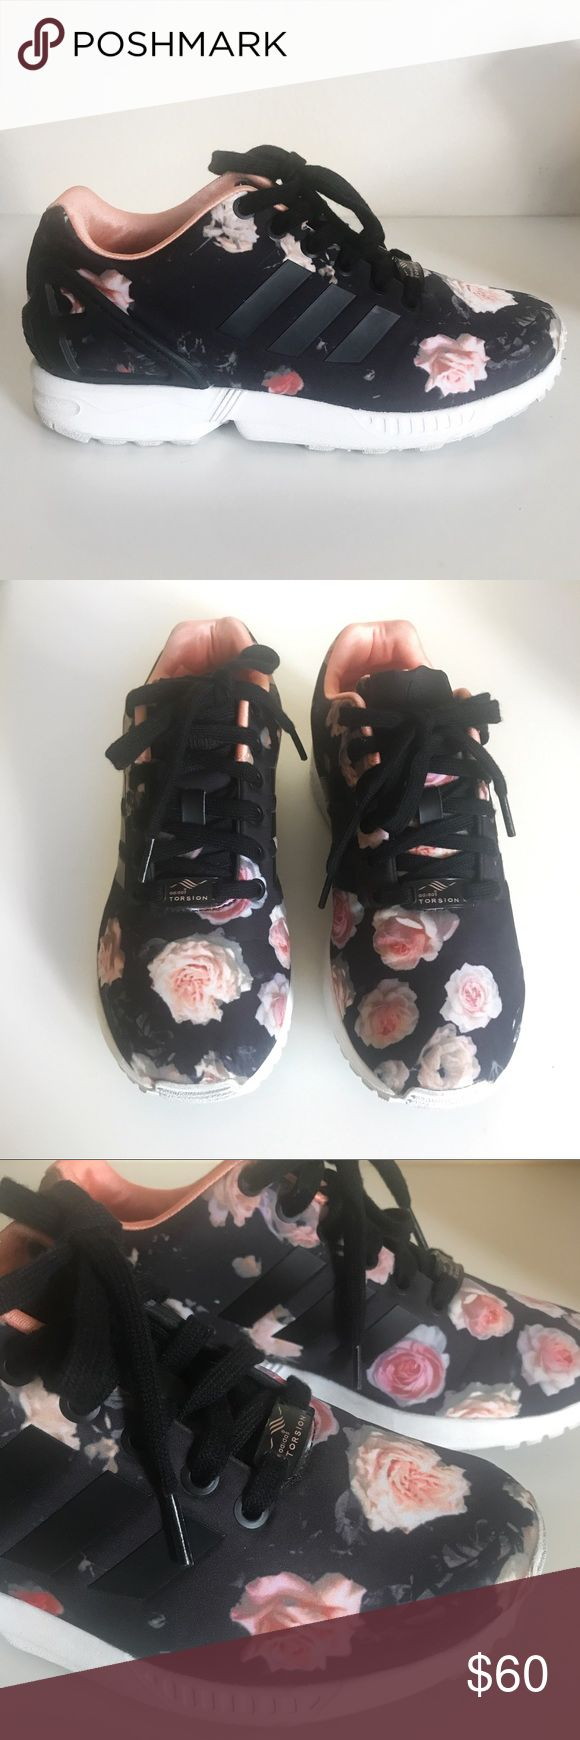 Floral Adidas Zx Flux Sneakers Worn 2x. Rare pair of adidas Zx Flux floral sneakers. Box included. Adidas b34010. No trades. Adidas Shoes Sneakers